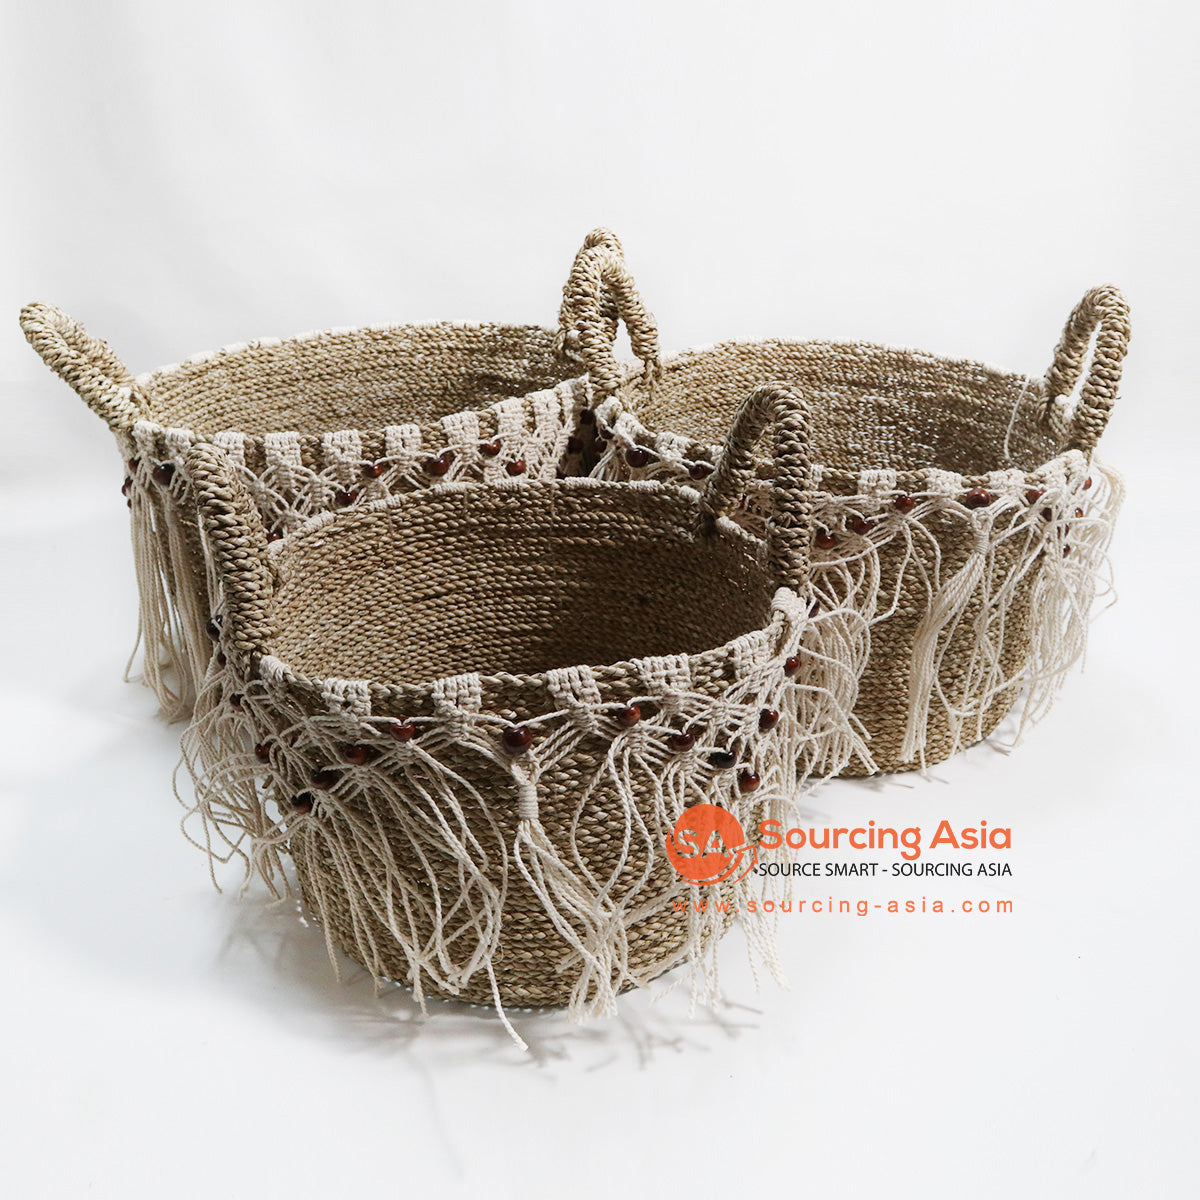 HBSC077 SET OF 3 AGEL AND MACRAME BEADED BASKETS